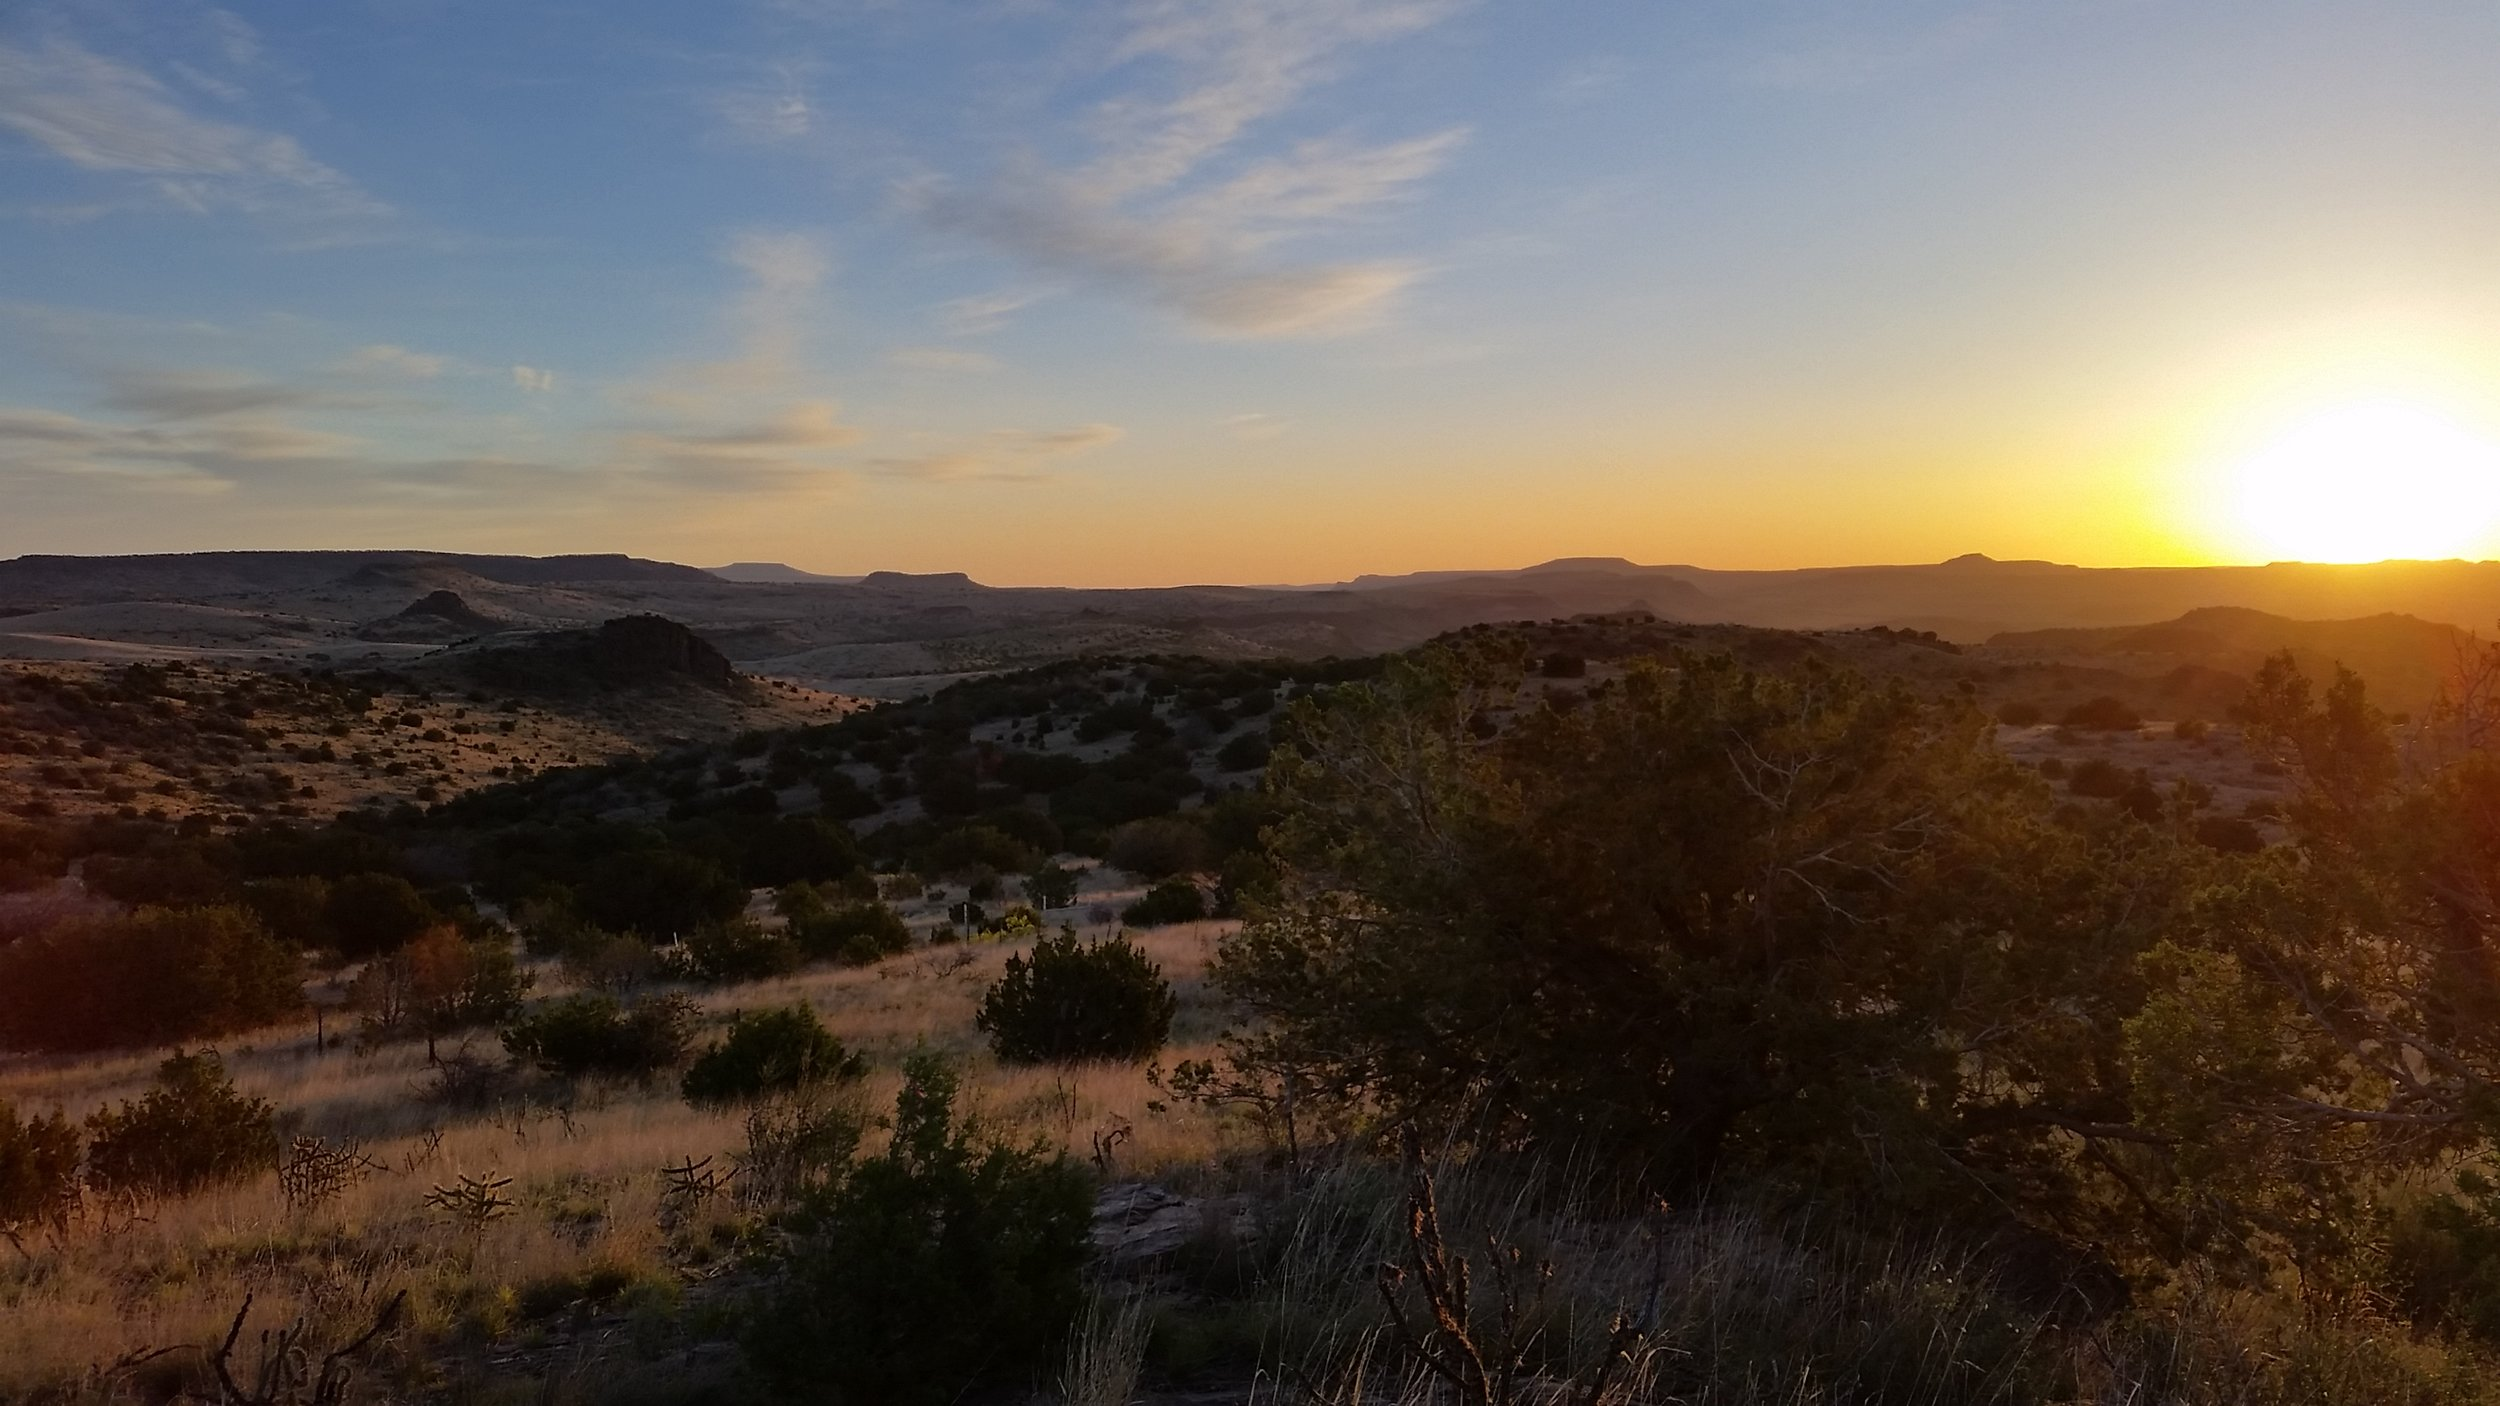 Catching a sunrise at the Davis Mountains State Park. One of Joel's all time favorite adventures we took while on his very first travel assignment in 2015.